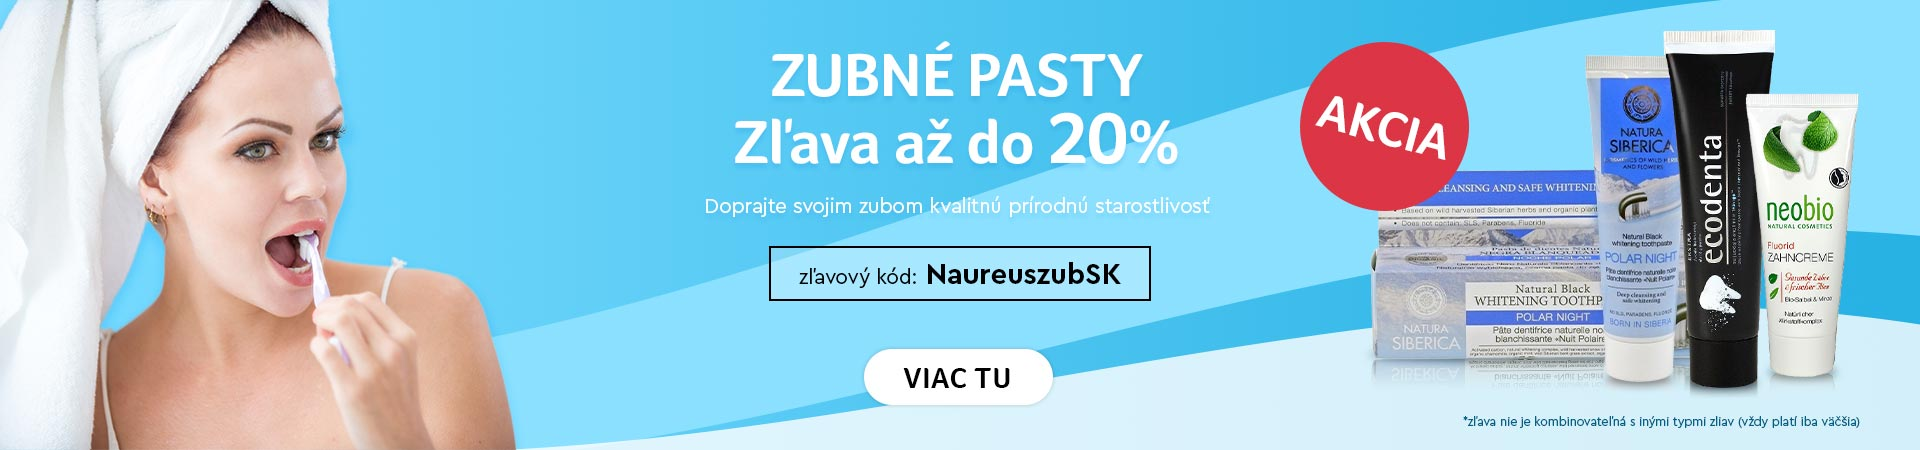 bf_zubne_pasty